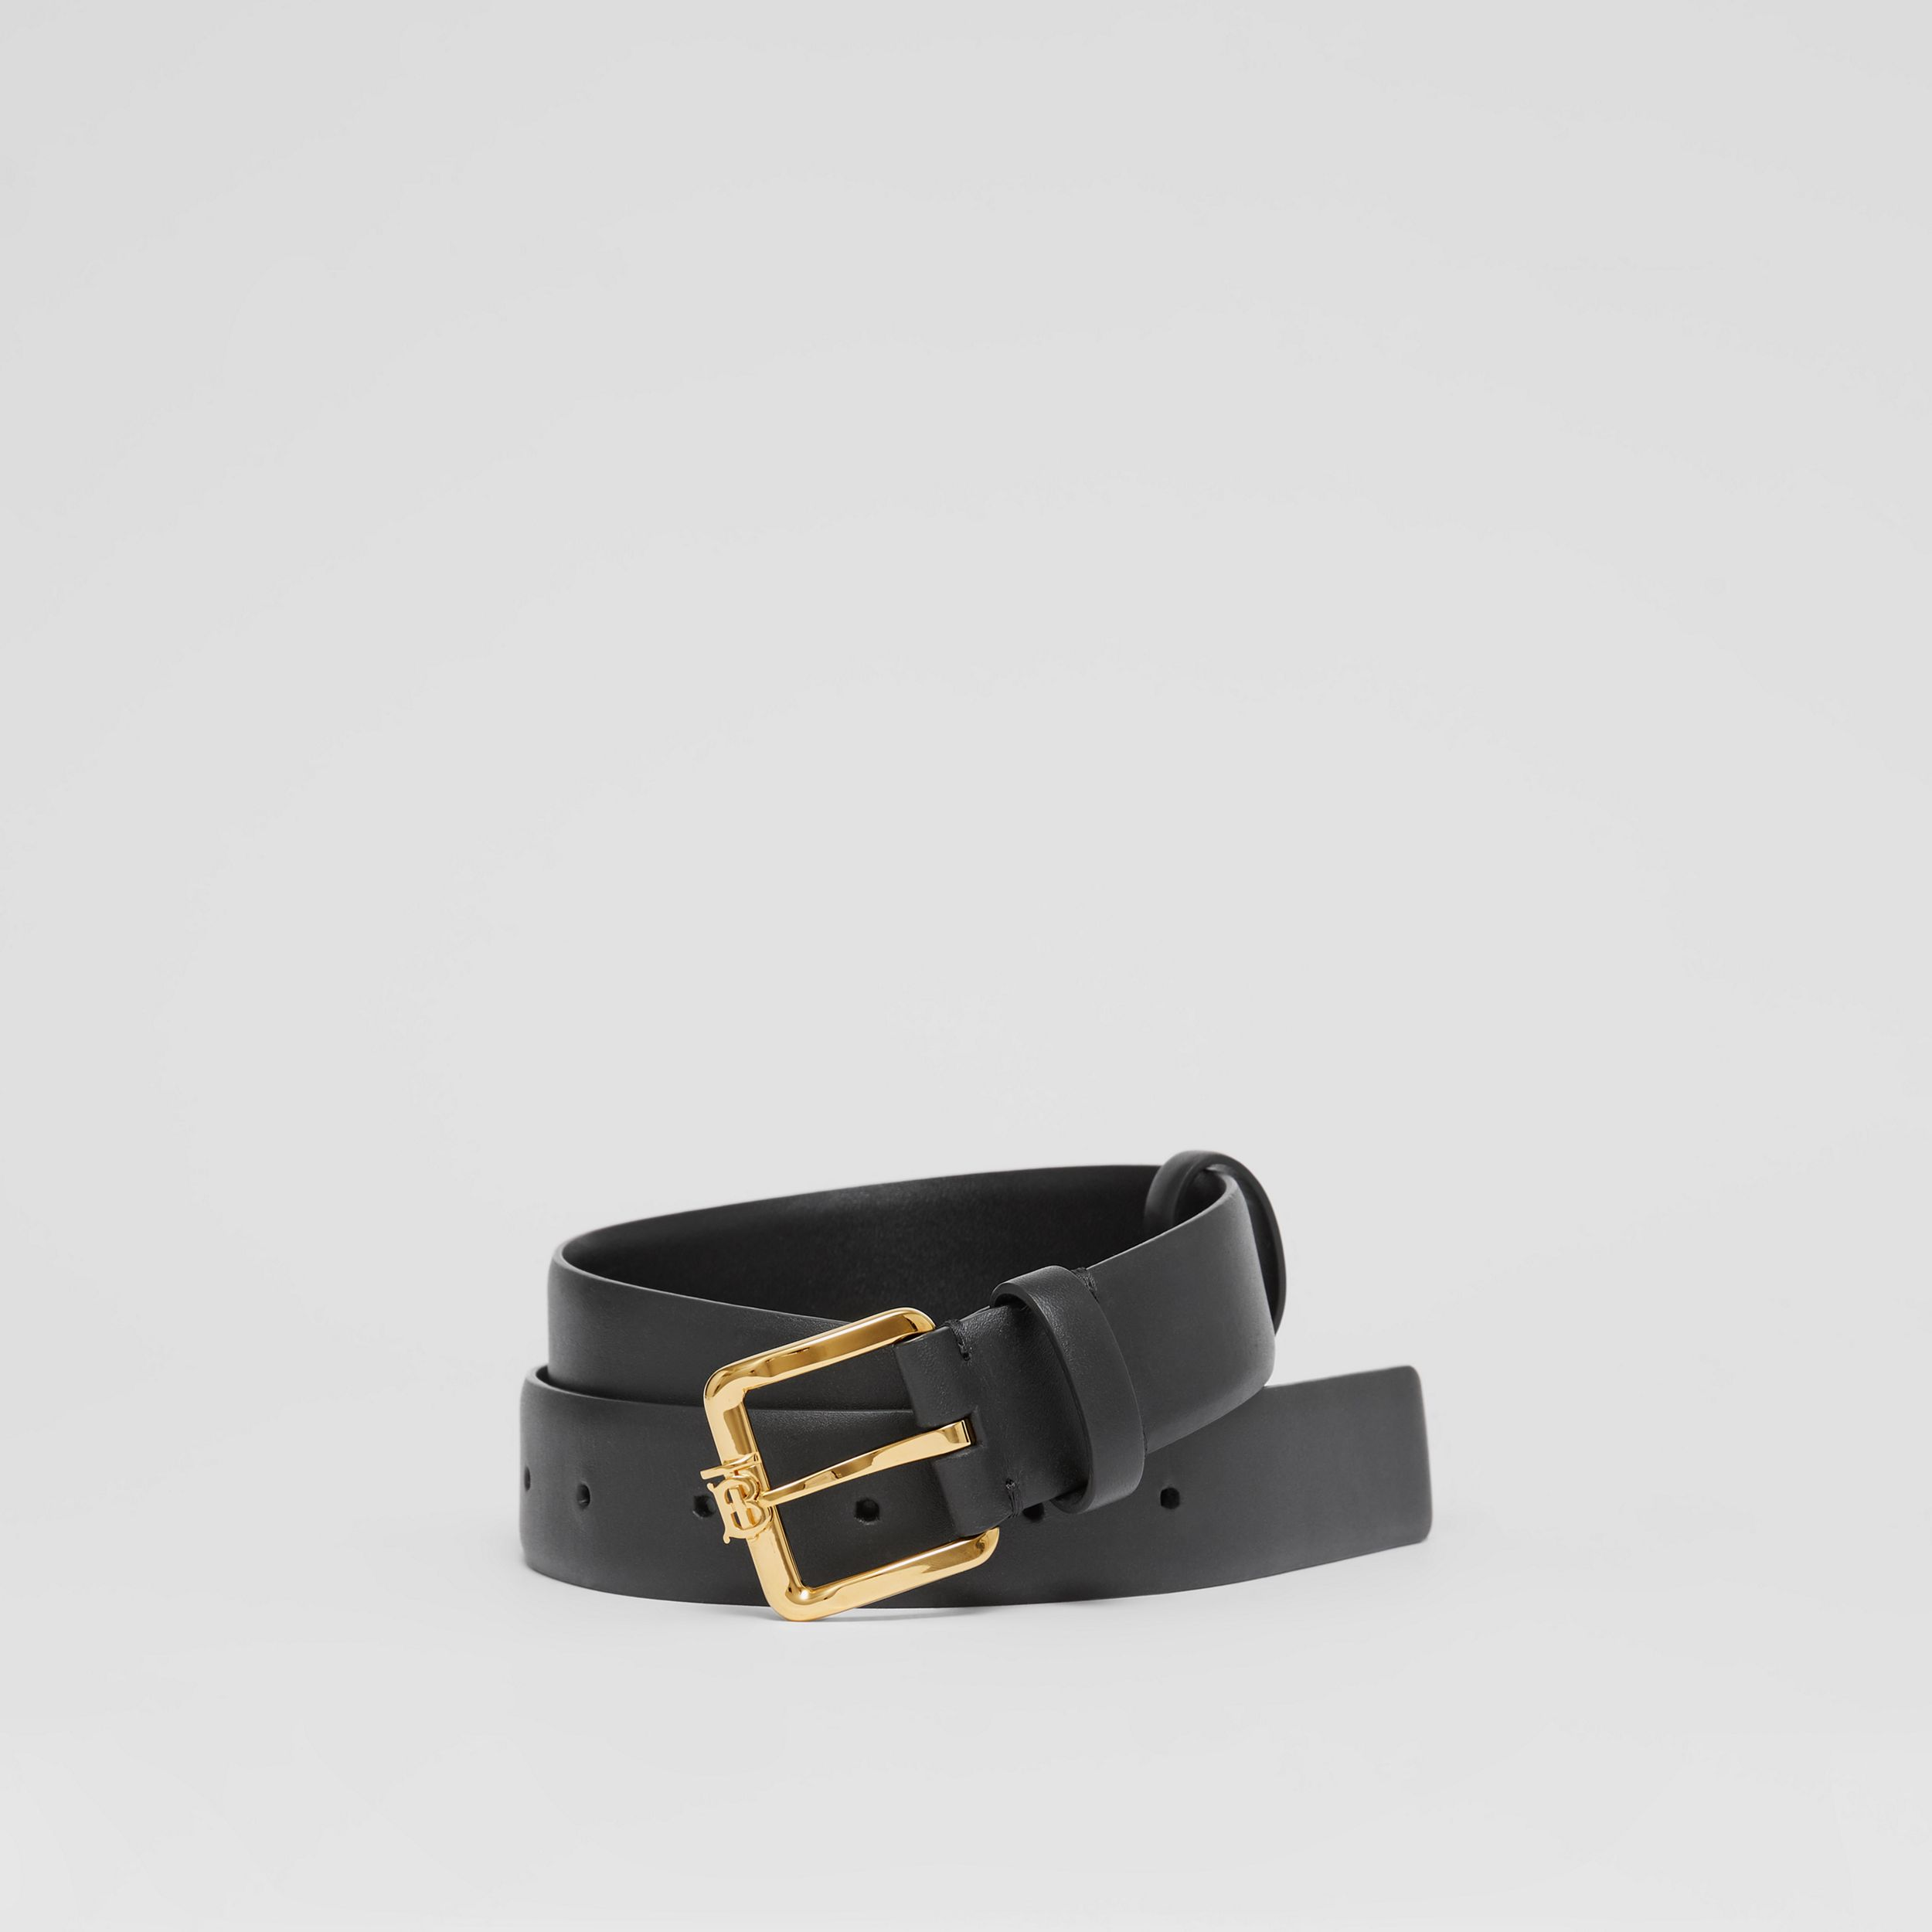 Monogram Motif Leather Belt in Black - Women | Burberry United Kingdom - 1